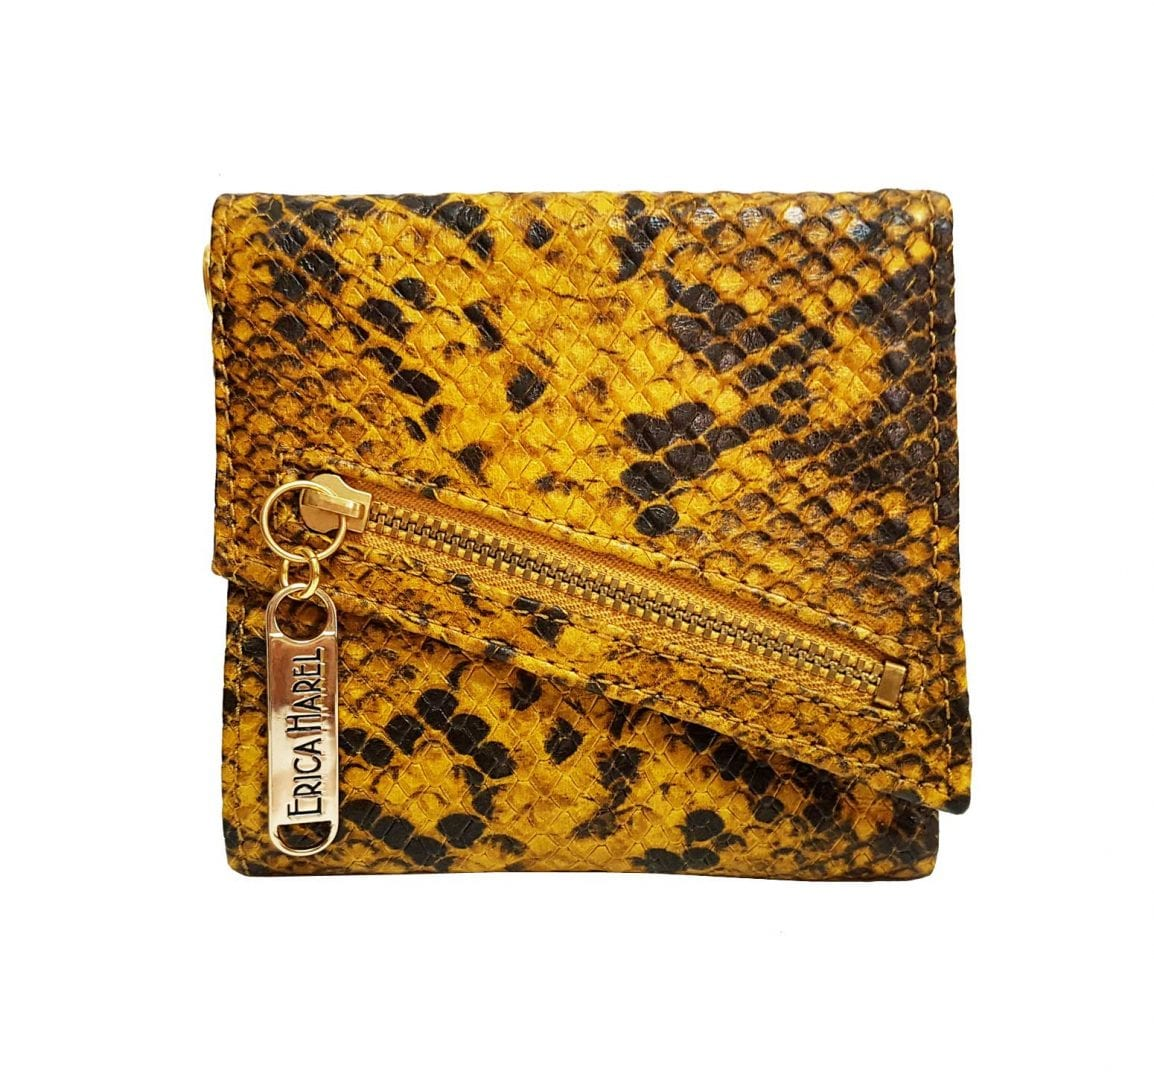 snakeskin printed womens leather wallet